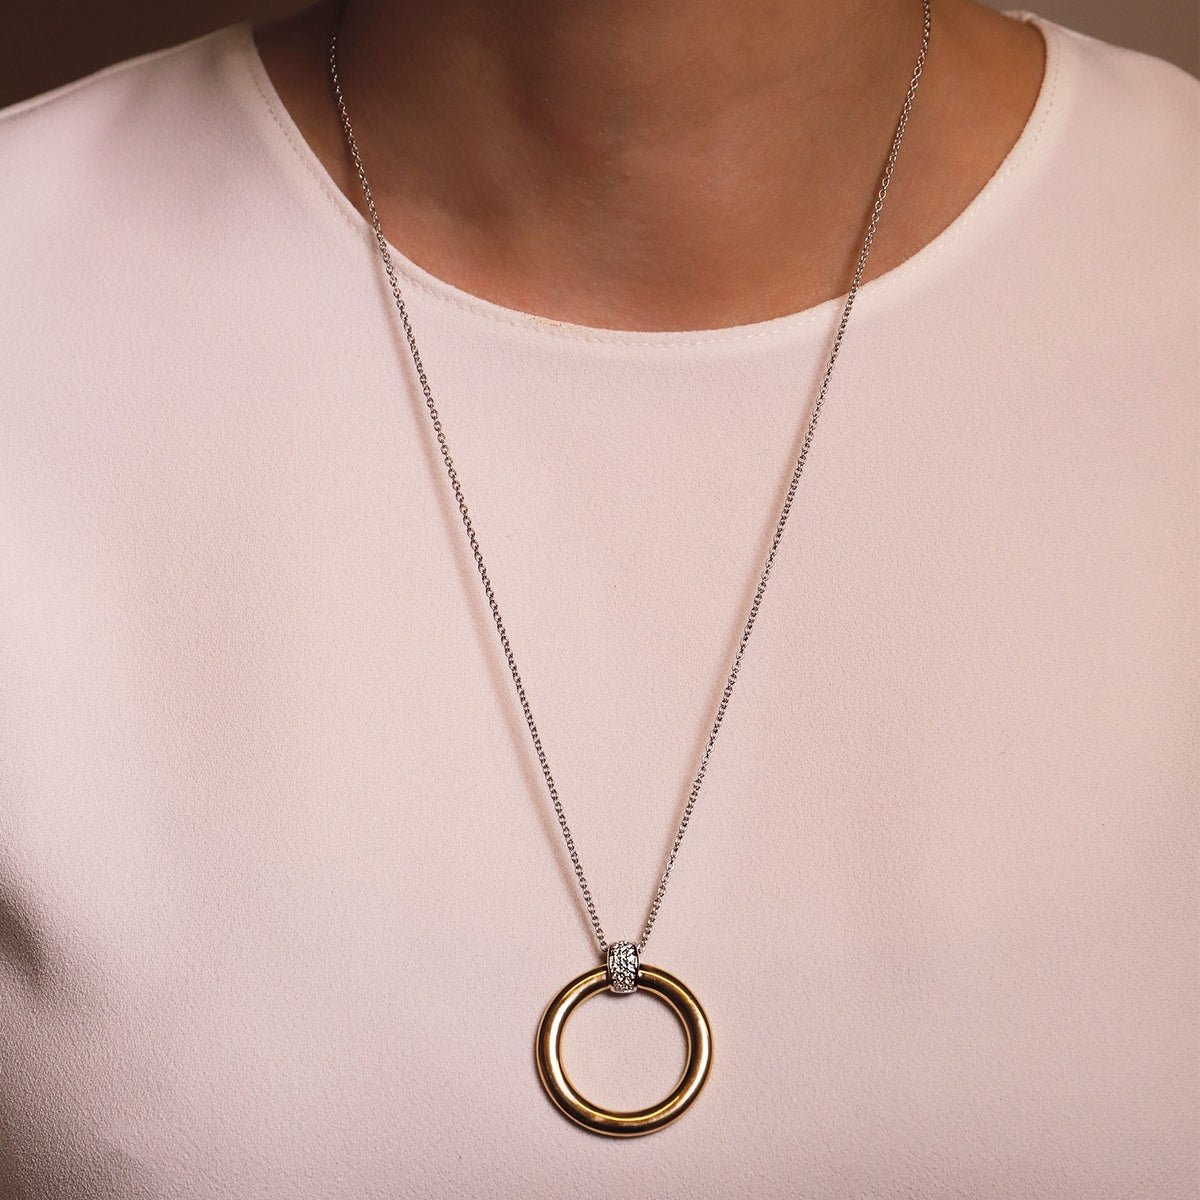 TI SENTO Sterling Silver and Gold Tone Circle Necklace on Model